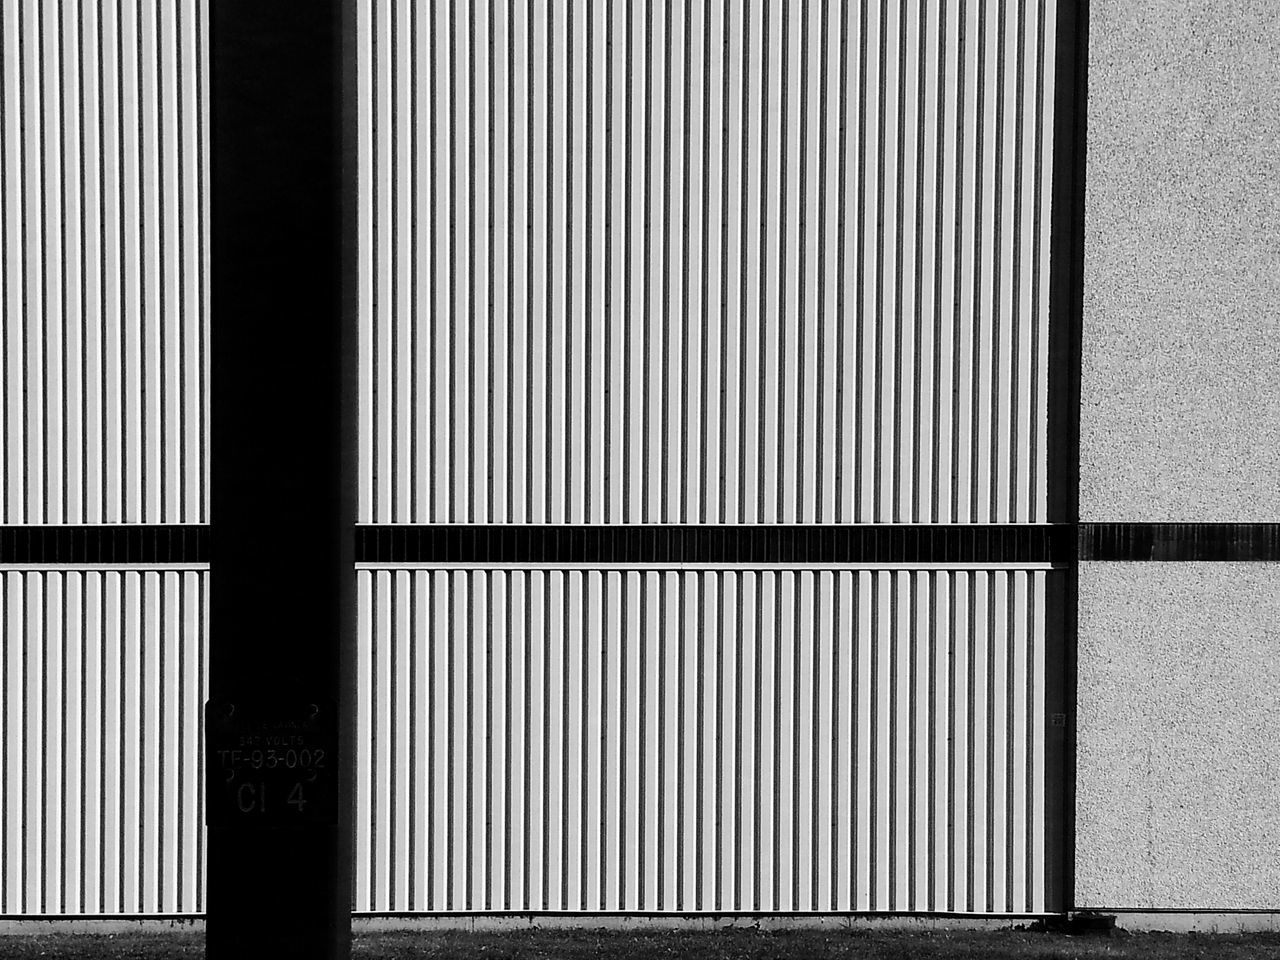 Wall lining... Less Is More ! for Bnw_friday_eyeemchallenge Stripes Straight Lines Vertical Horizontal Pattern Pieces Wall Sections Geometric Architecture Patterns Stripes Lines And Angles Minimalist EyeEm Best Shots - Architecture The Architect - 2016 EyeEm Awards My Favorite Photo Your Design Story The Architect- 2016 Eyeem Awards Fine Art Photography Monochrome Photography Maximum Closeness Minimalist Architecture Welcome To Black ミーノー!!